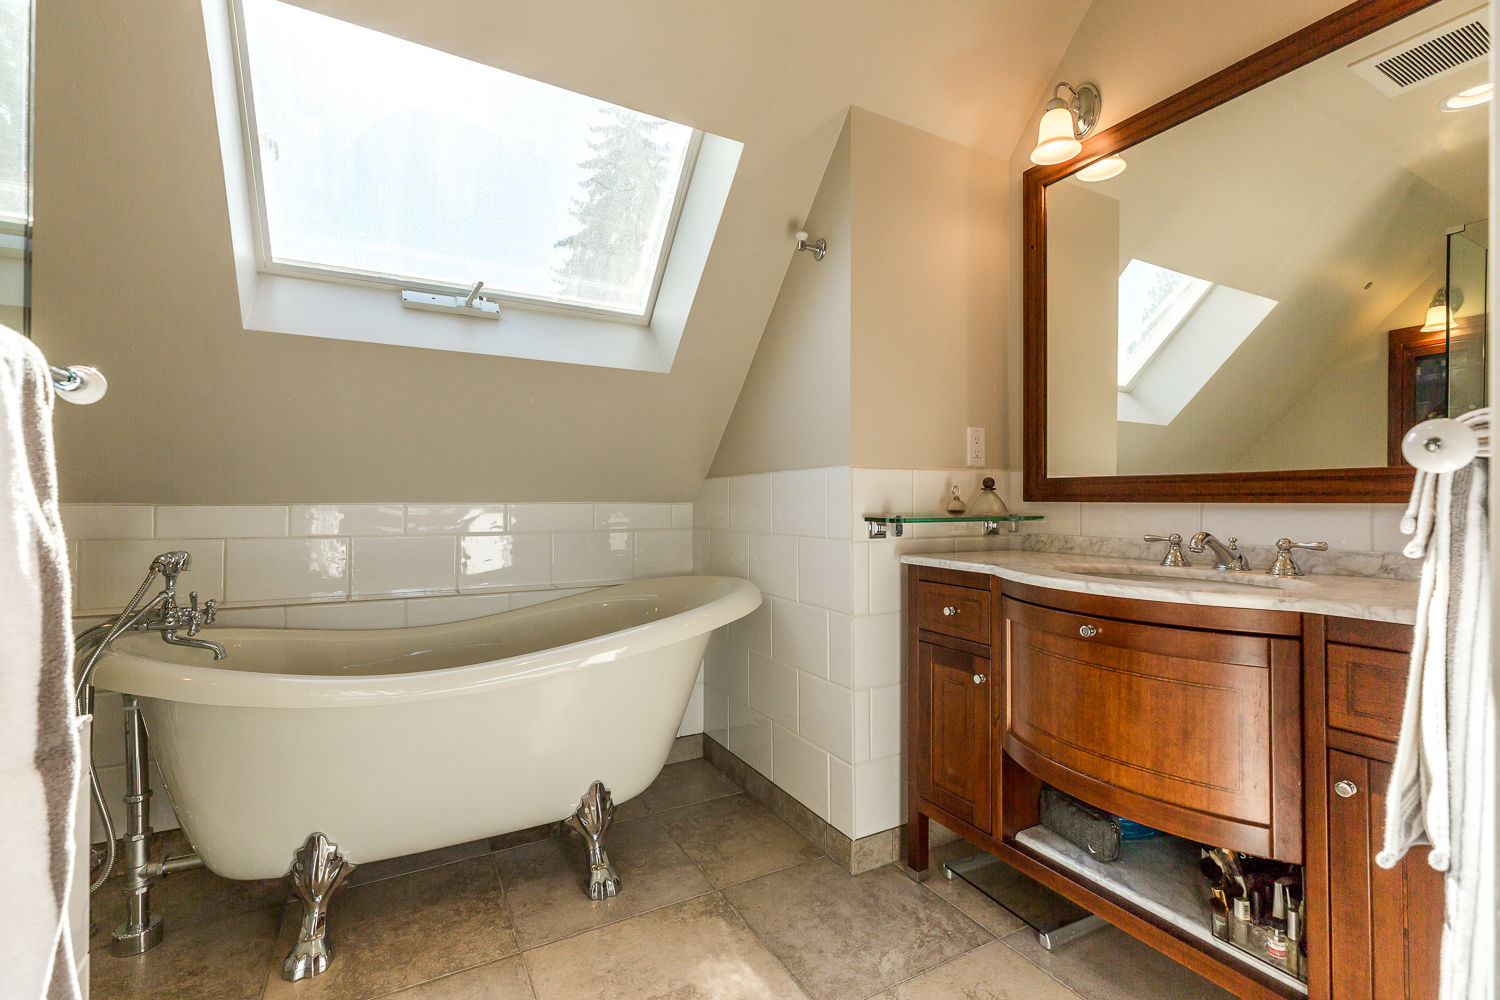 Top Floor Master Suite Ensuite with Claw Foot Tub